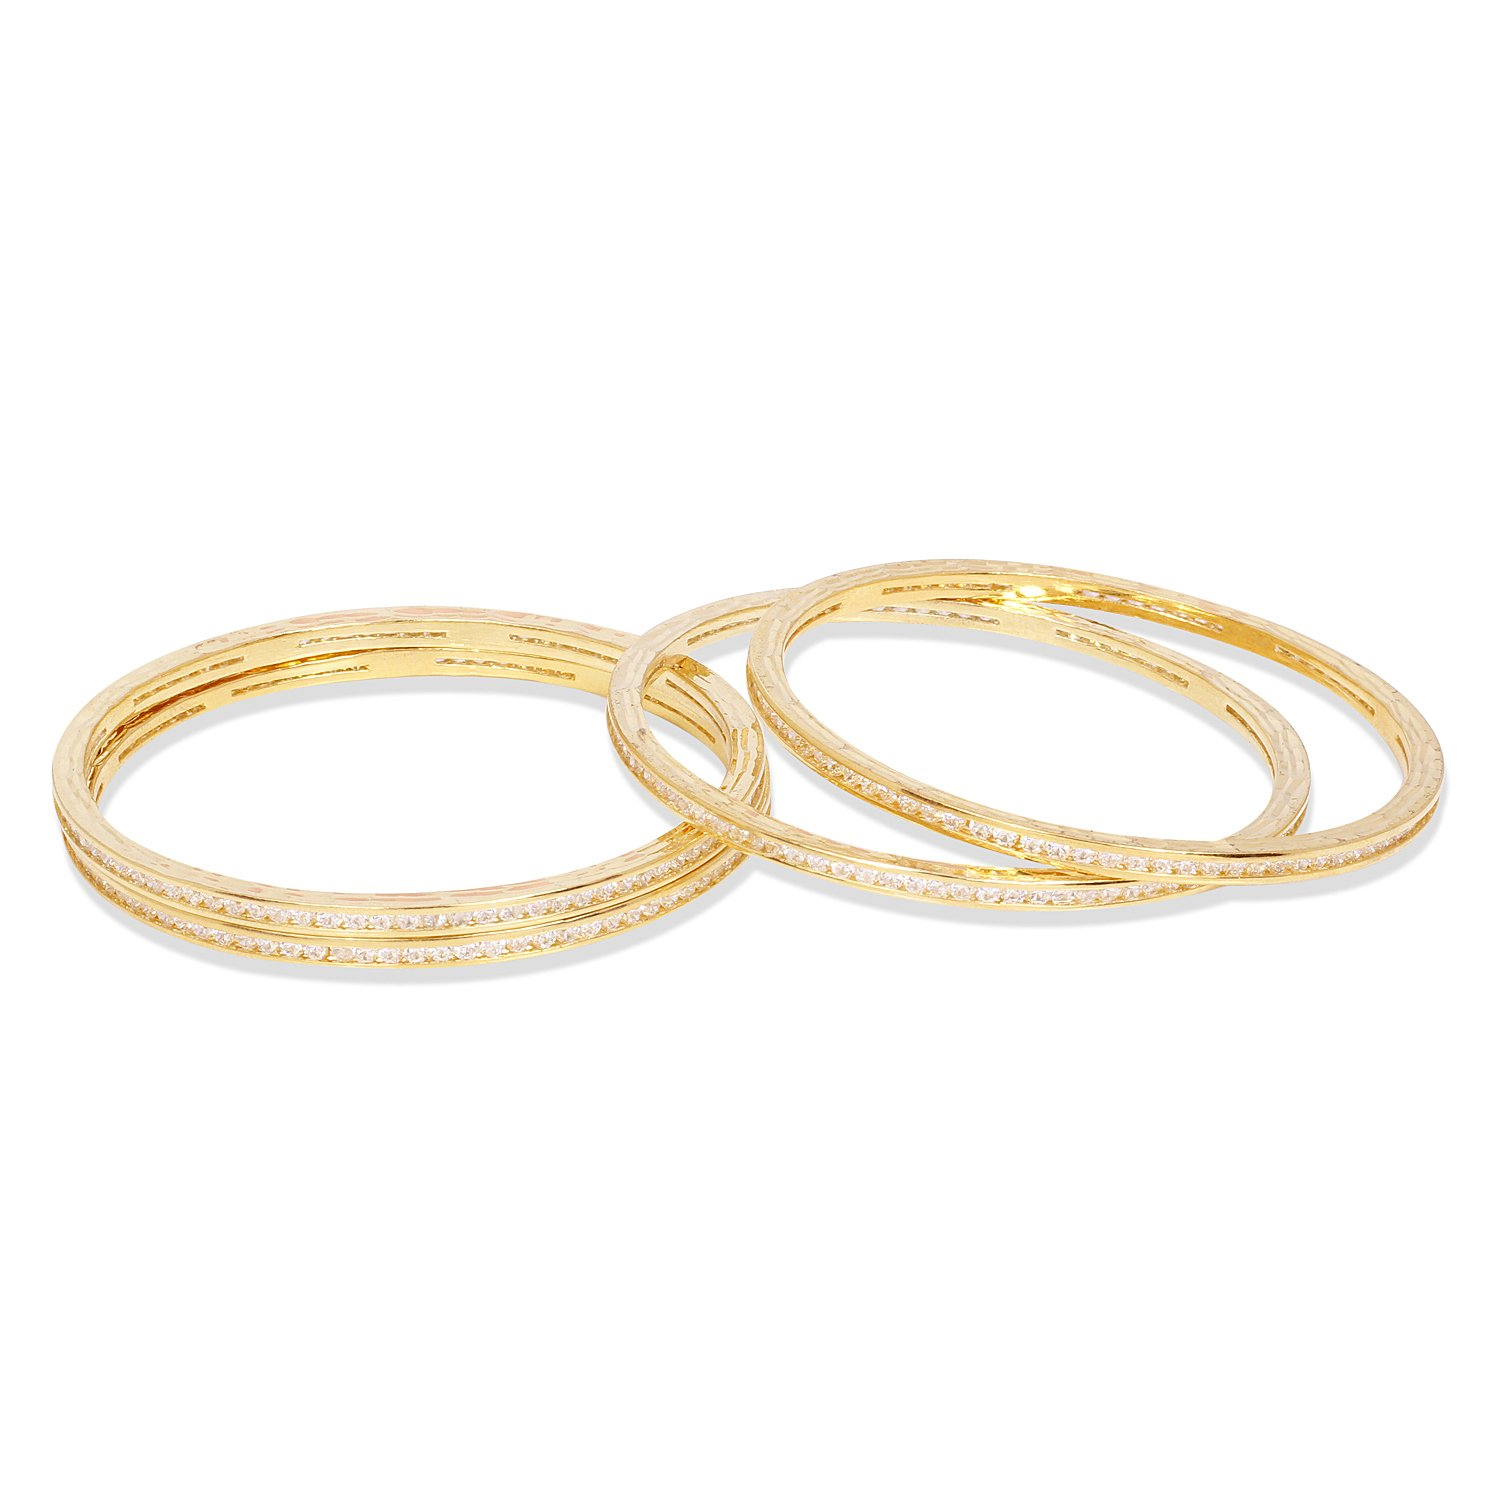 Ratna Indian Bollywood Style Gold Tone American Diamond Bangle Bracelet Traditional Partywear Jewelry